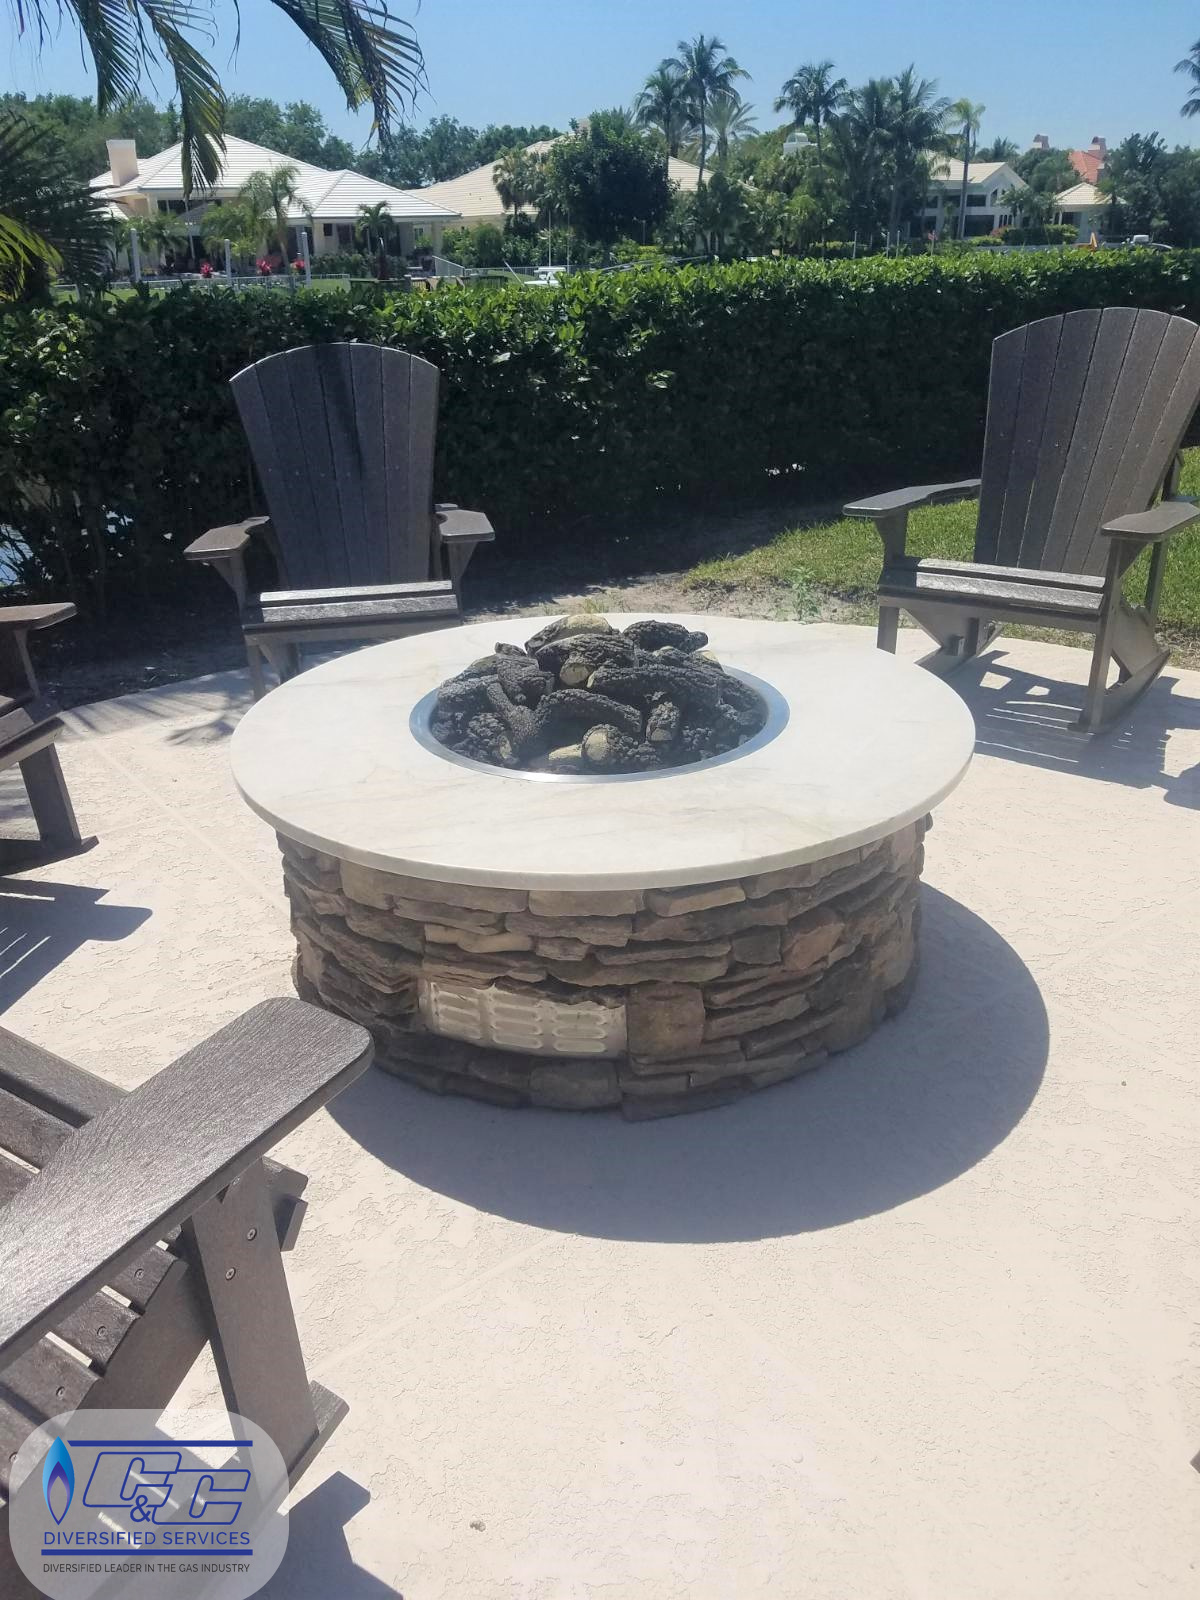 Custom round fire pit - vent louvers for proper cross ventilation